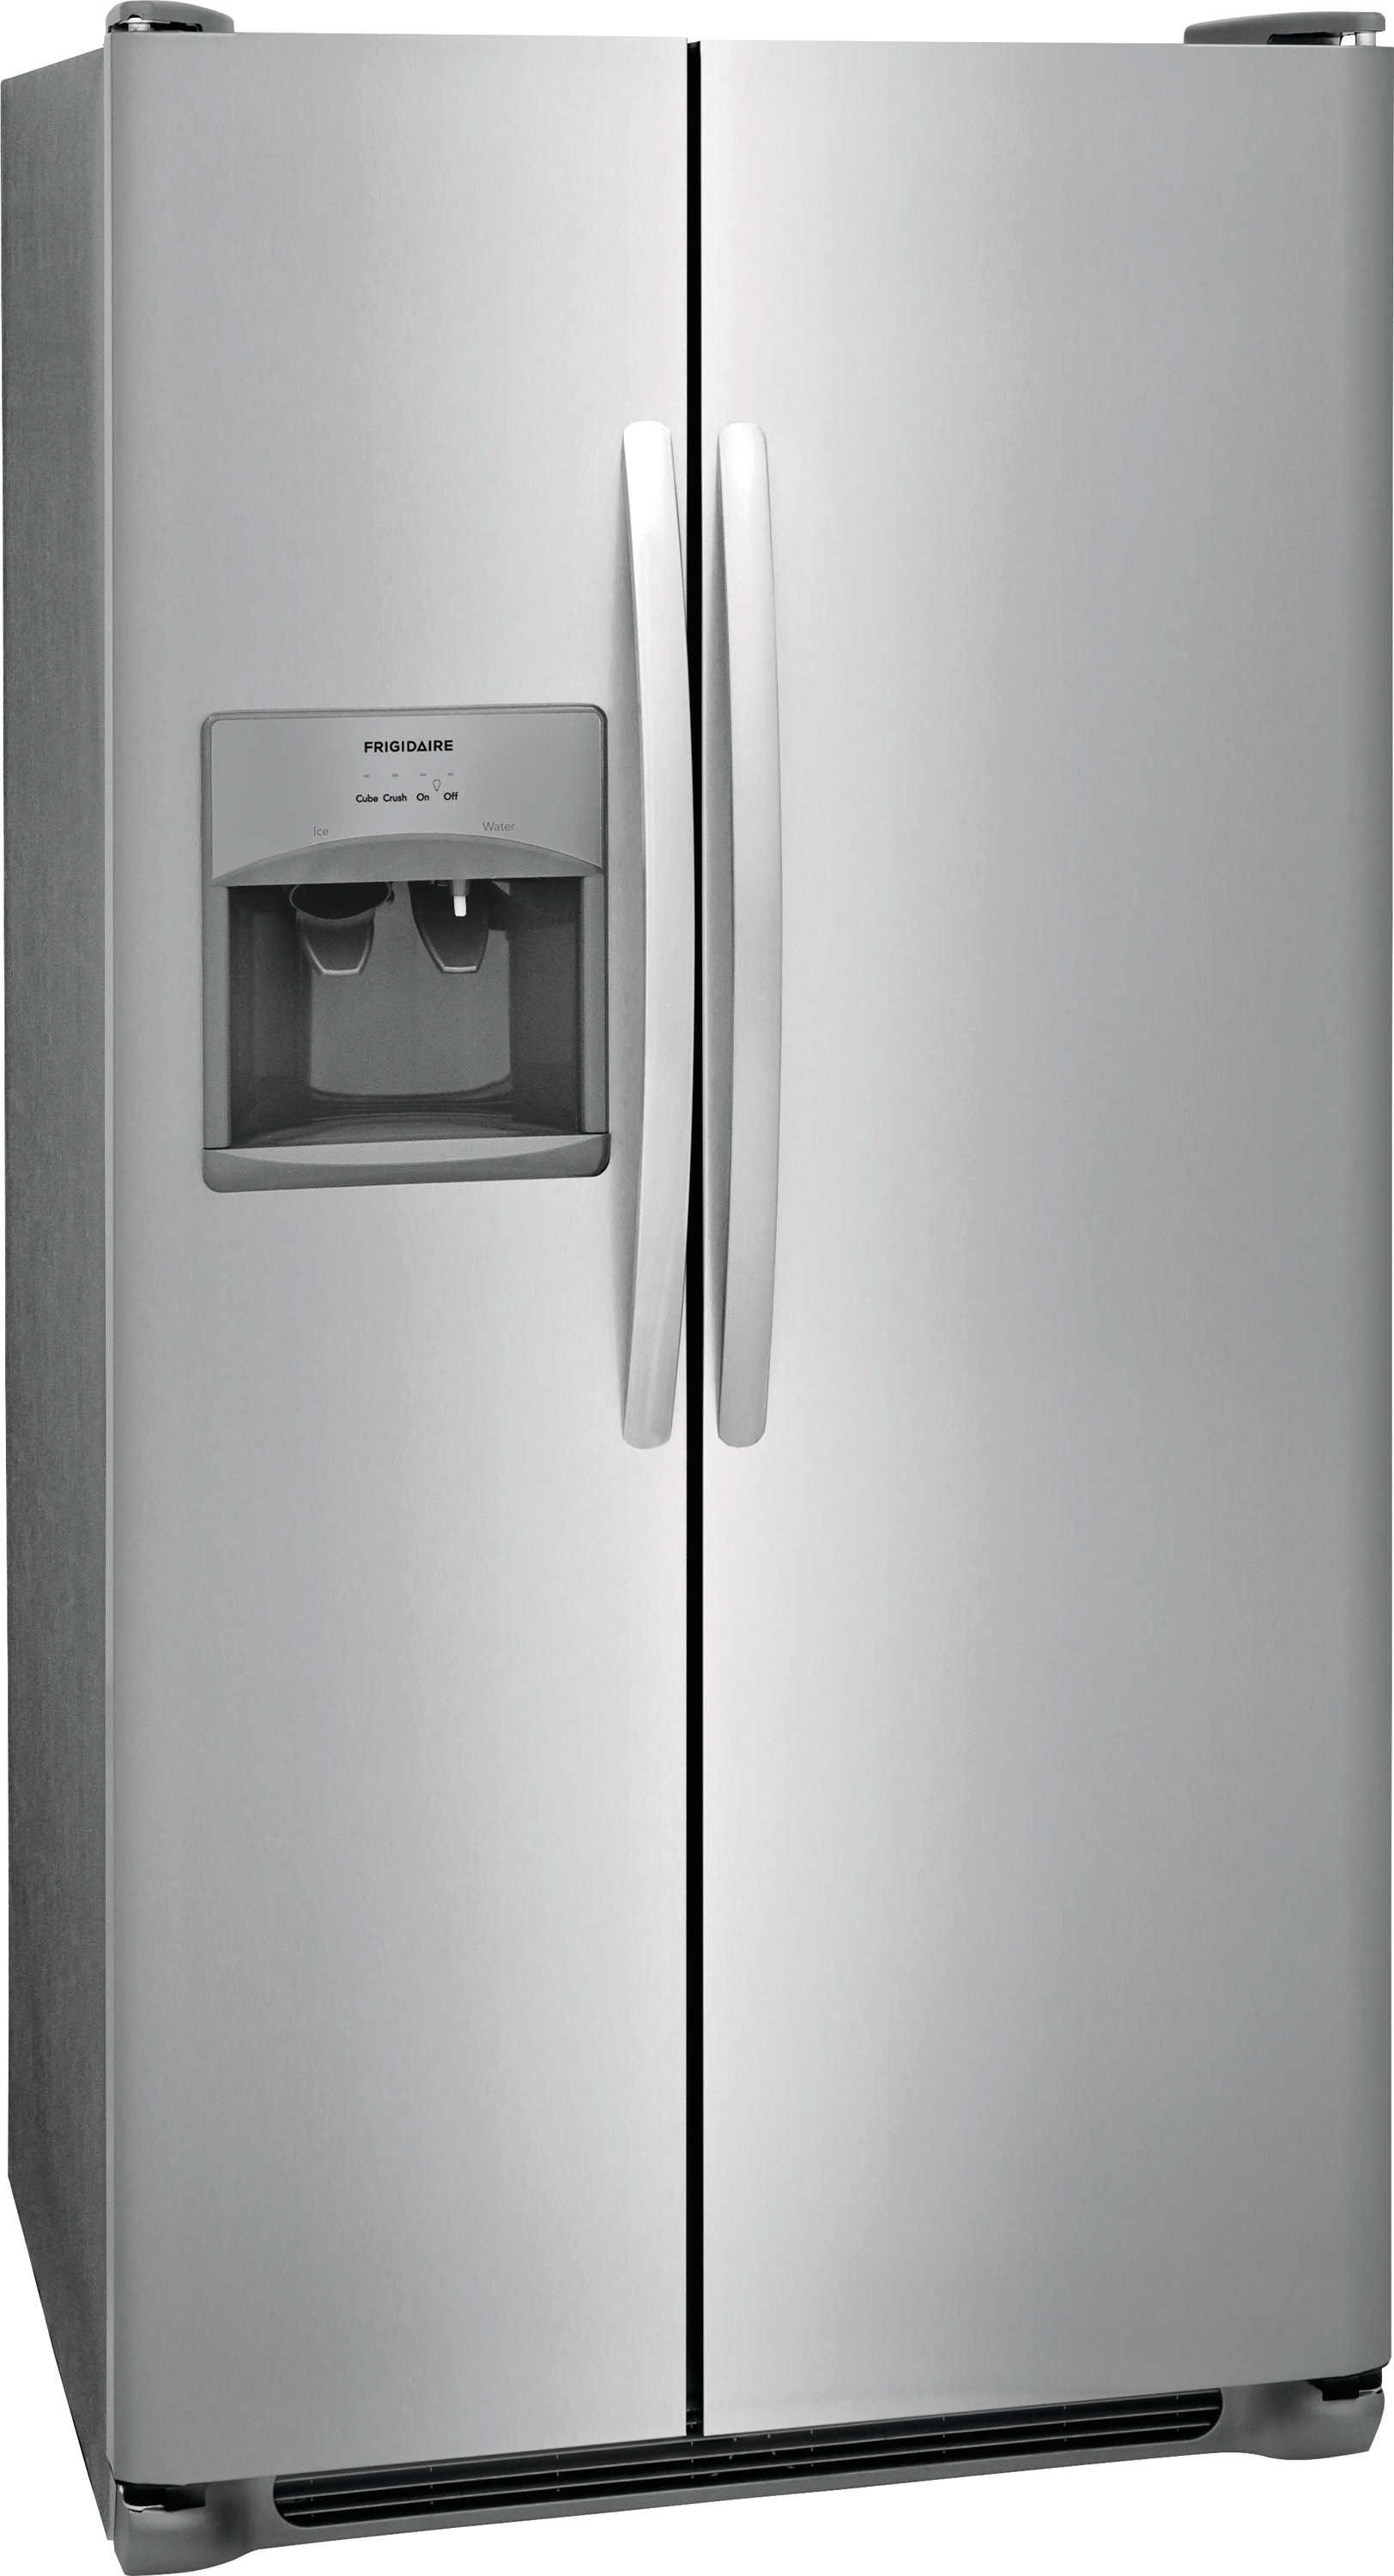 22.1 Cu. Ft. Side-by-Side Refrigerator